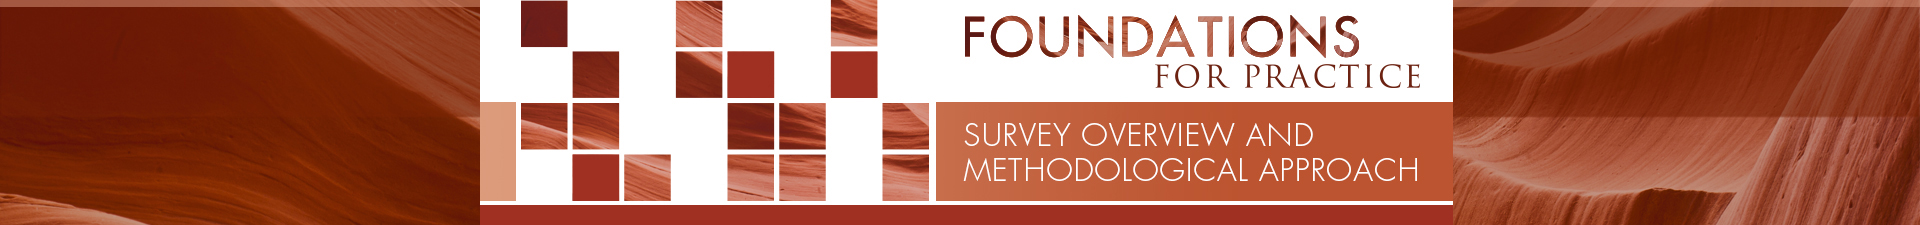 Survey Overview and Methodological Approach